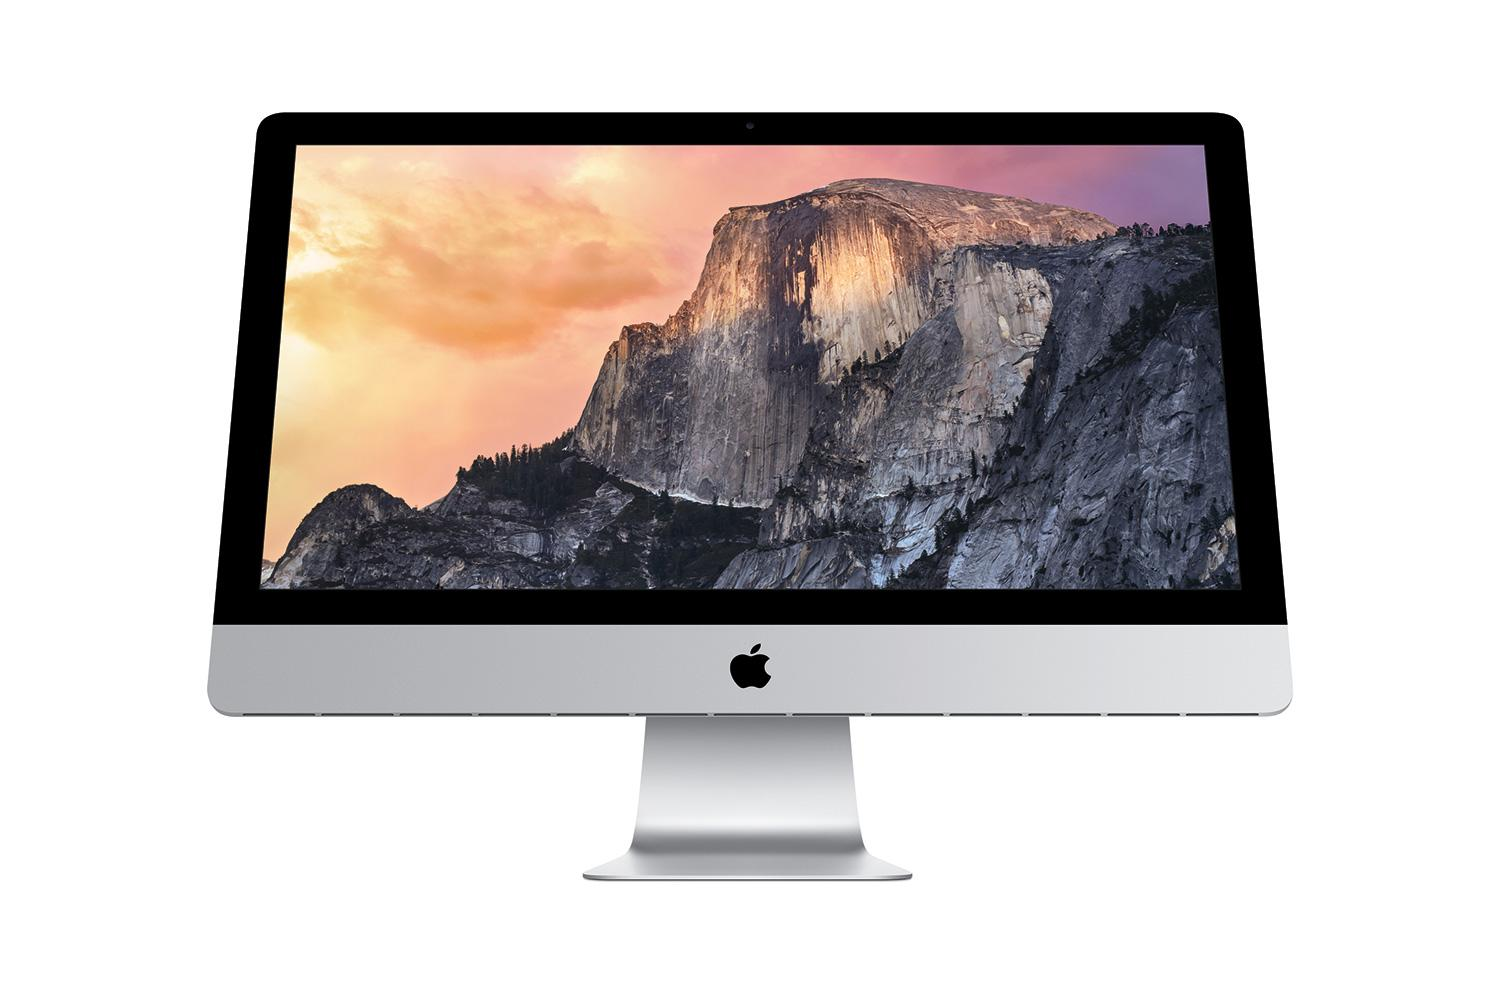 apple imac retina vs standard imac vs dell xps 27 touch. Black Bedroom Furniture Sets. Home Design Ideas